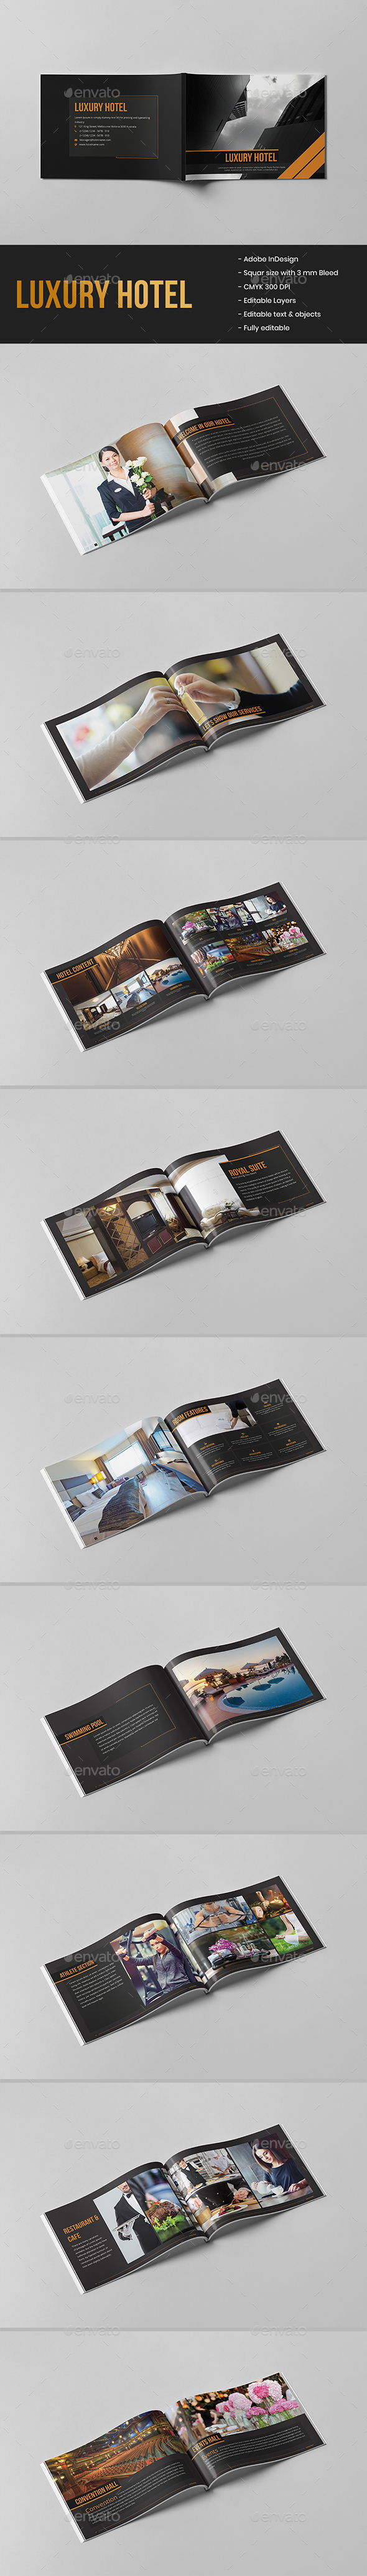 Luxury Hotel Brochure - Corporate Brochures